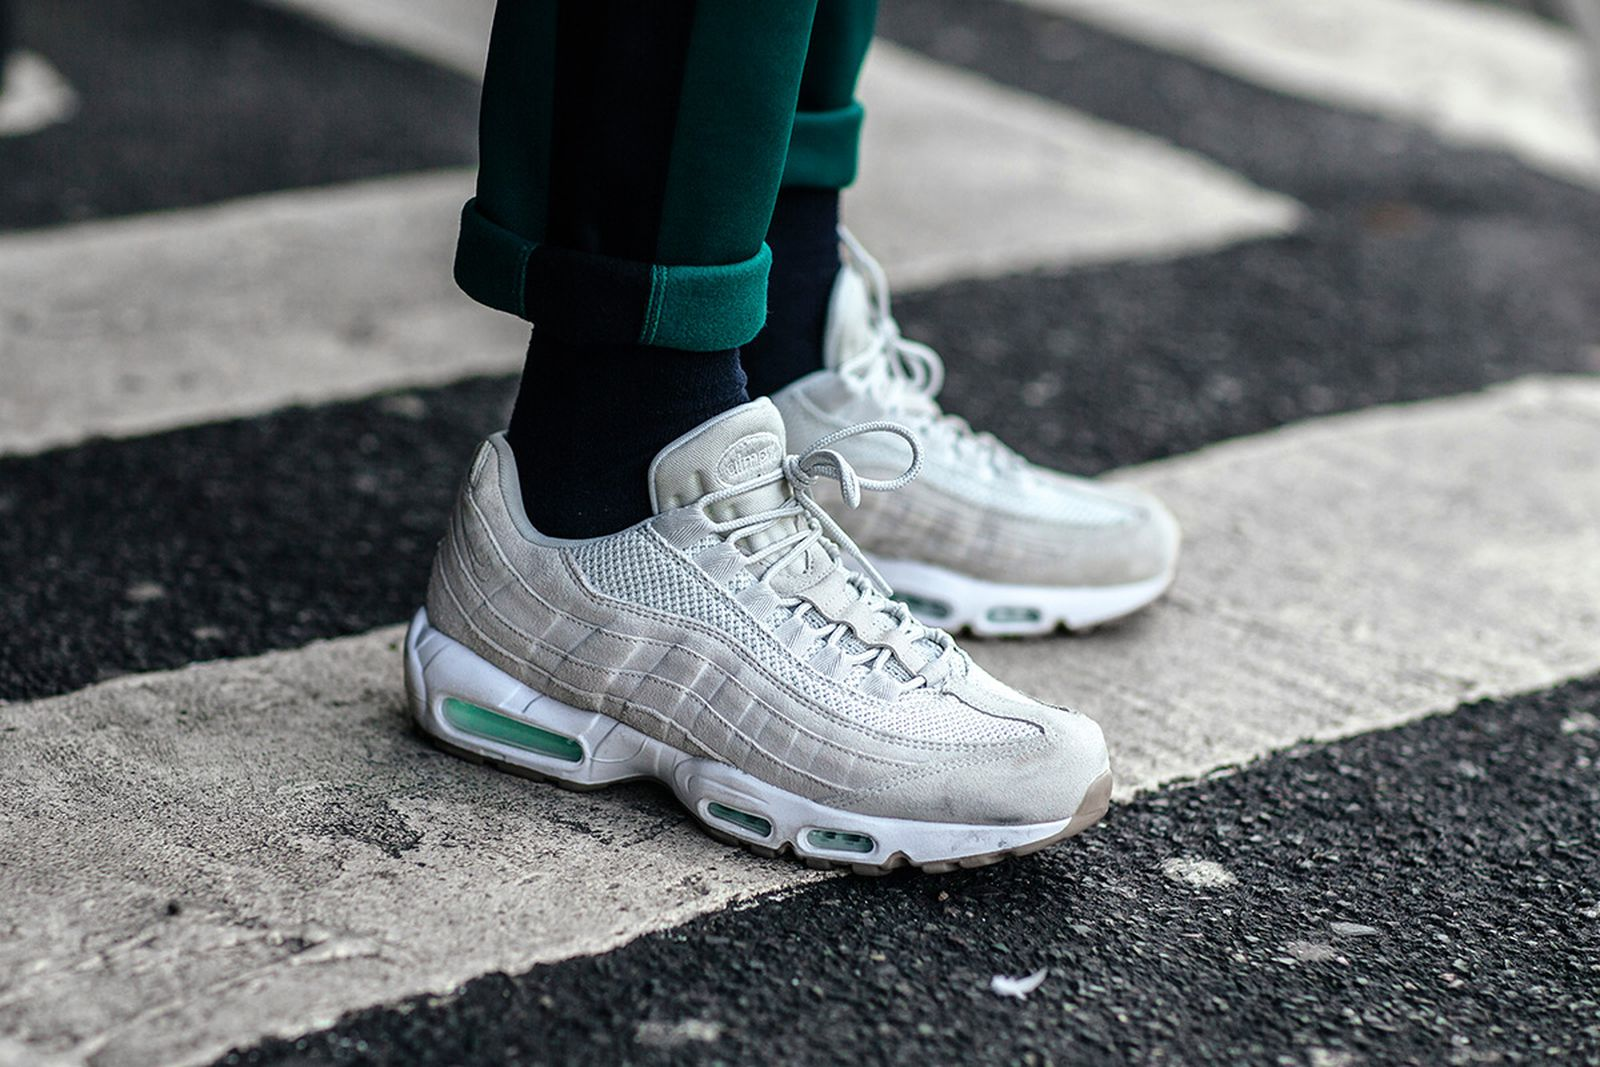 The Air Max 95 – the first Air Max runner to ditch the standard Swoosh on the side.